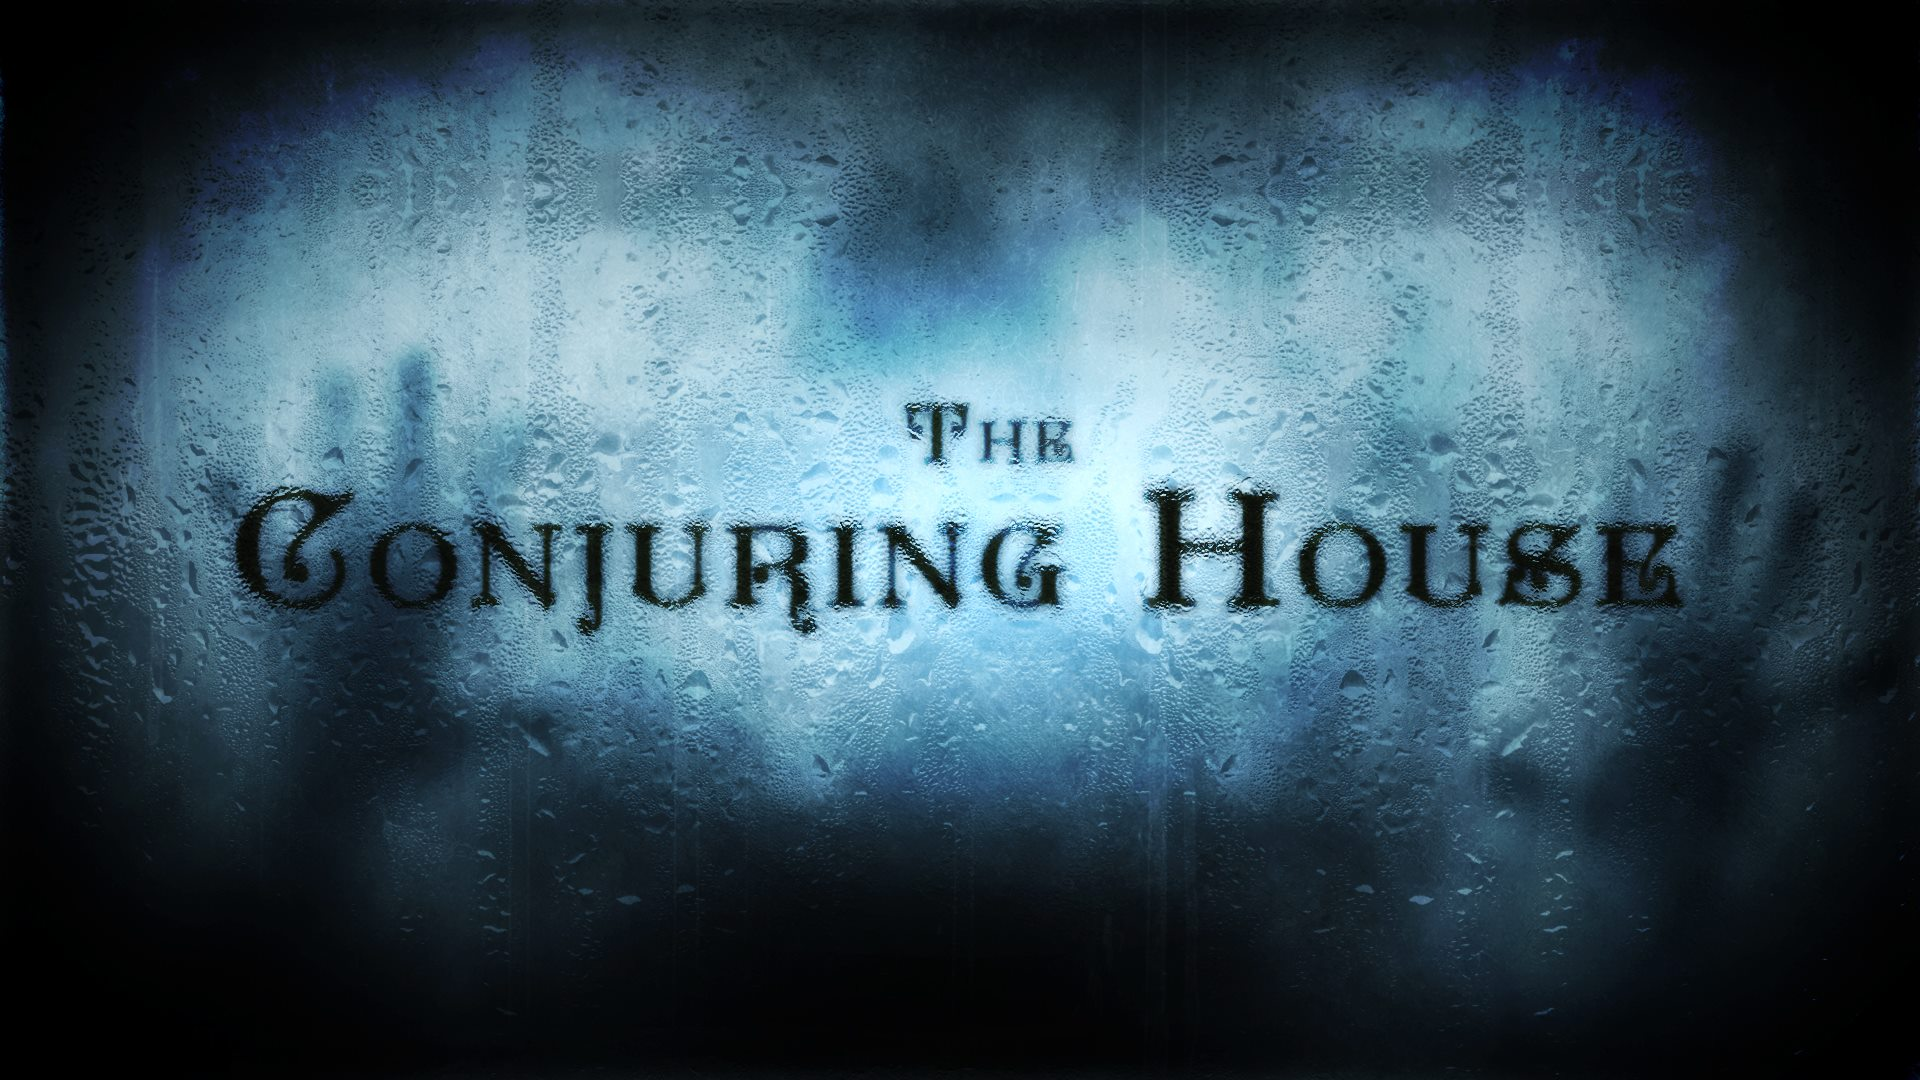 We Are RYM GAMES, An Independent Game Studio, And We Are Pleased To Share  With You The Second Trailer Of Our Game U201cThe Conjuring Houseu201d, A Paranormal  Horror ...